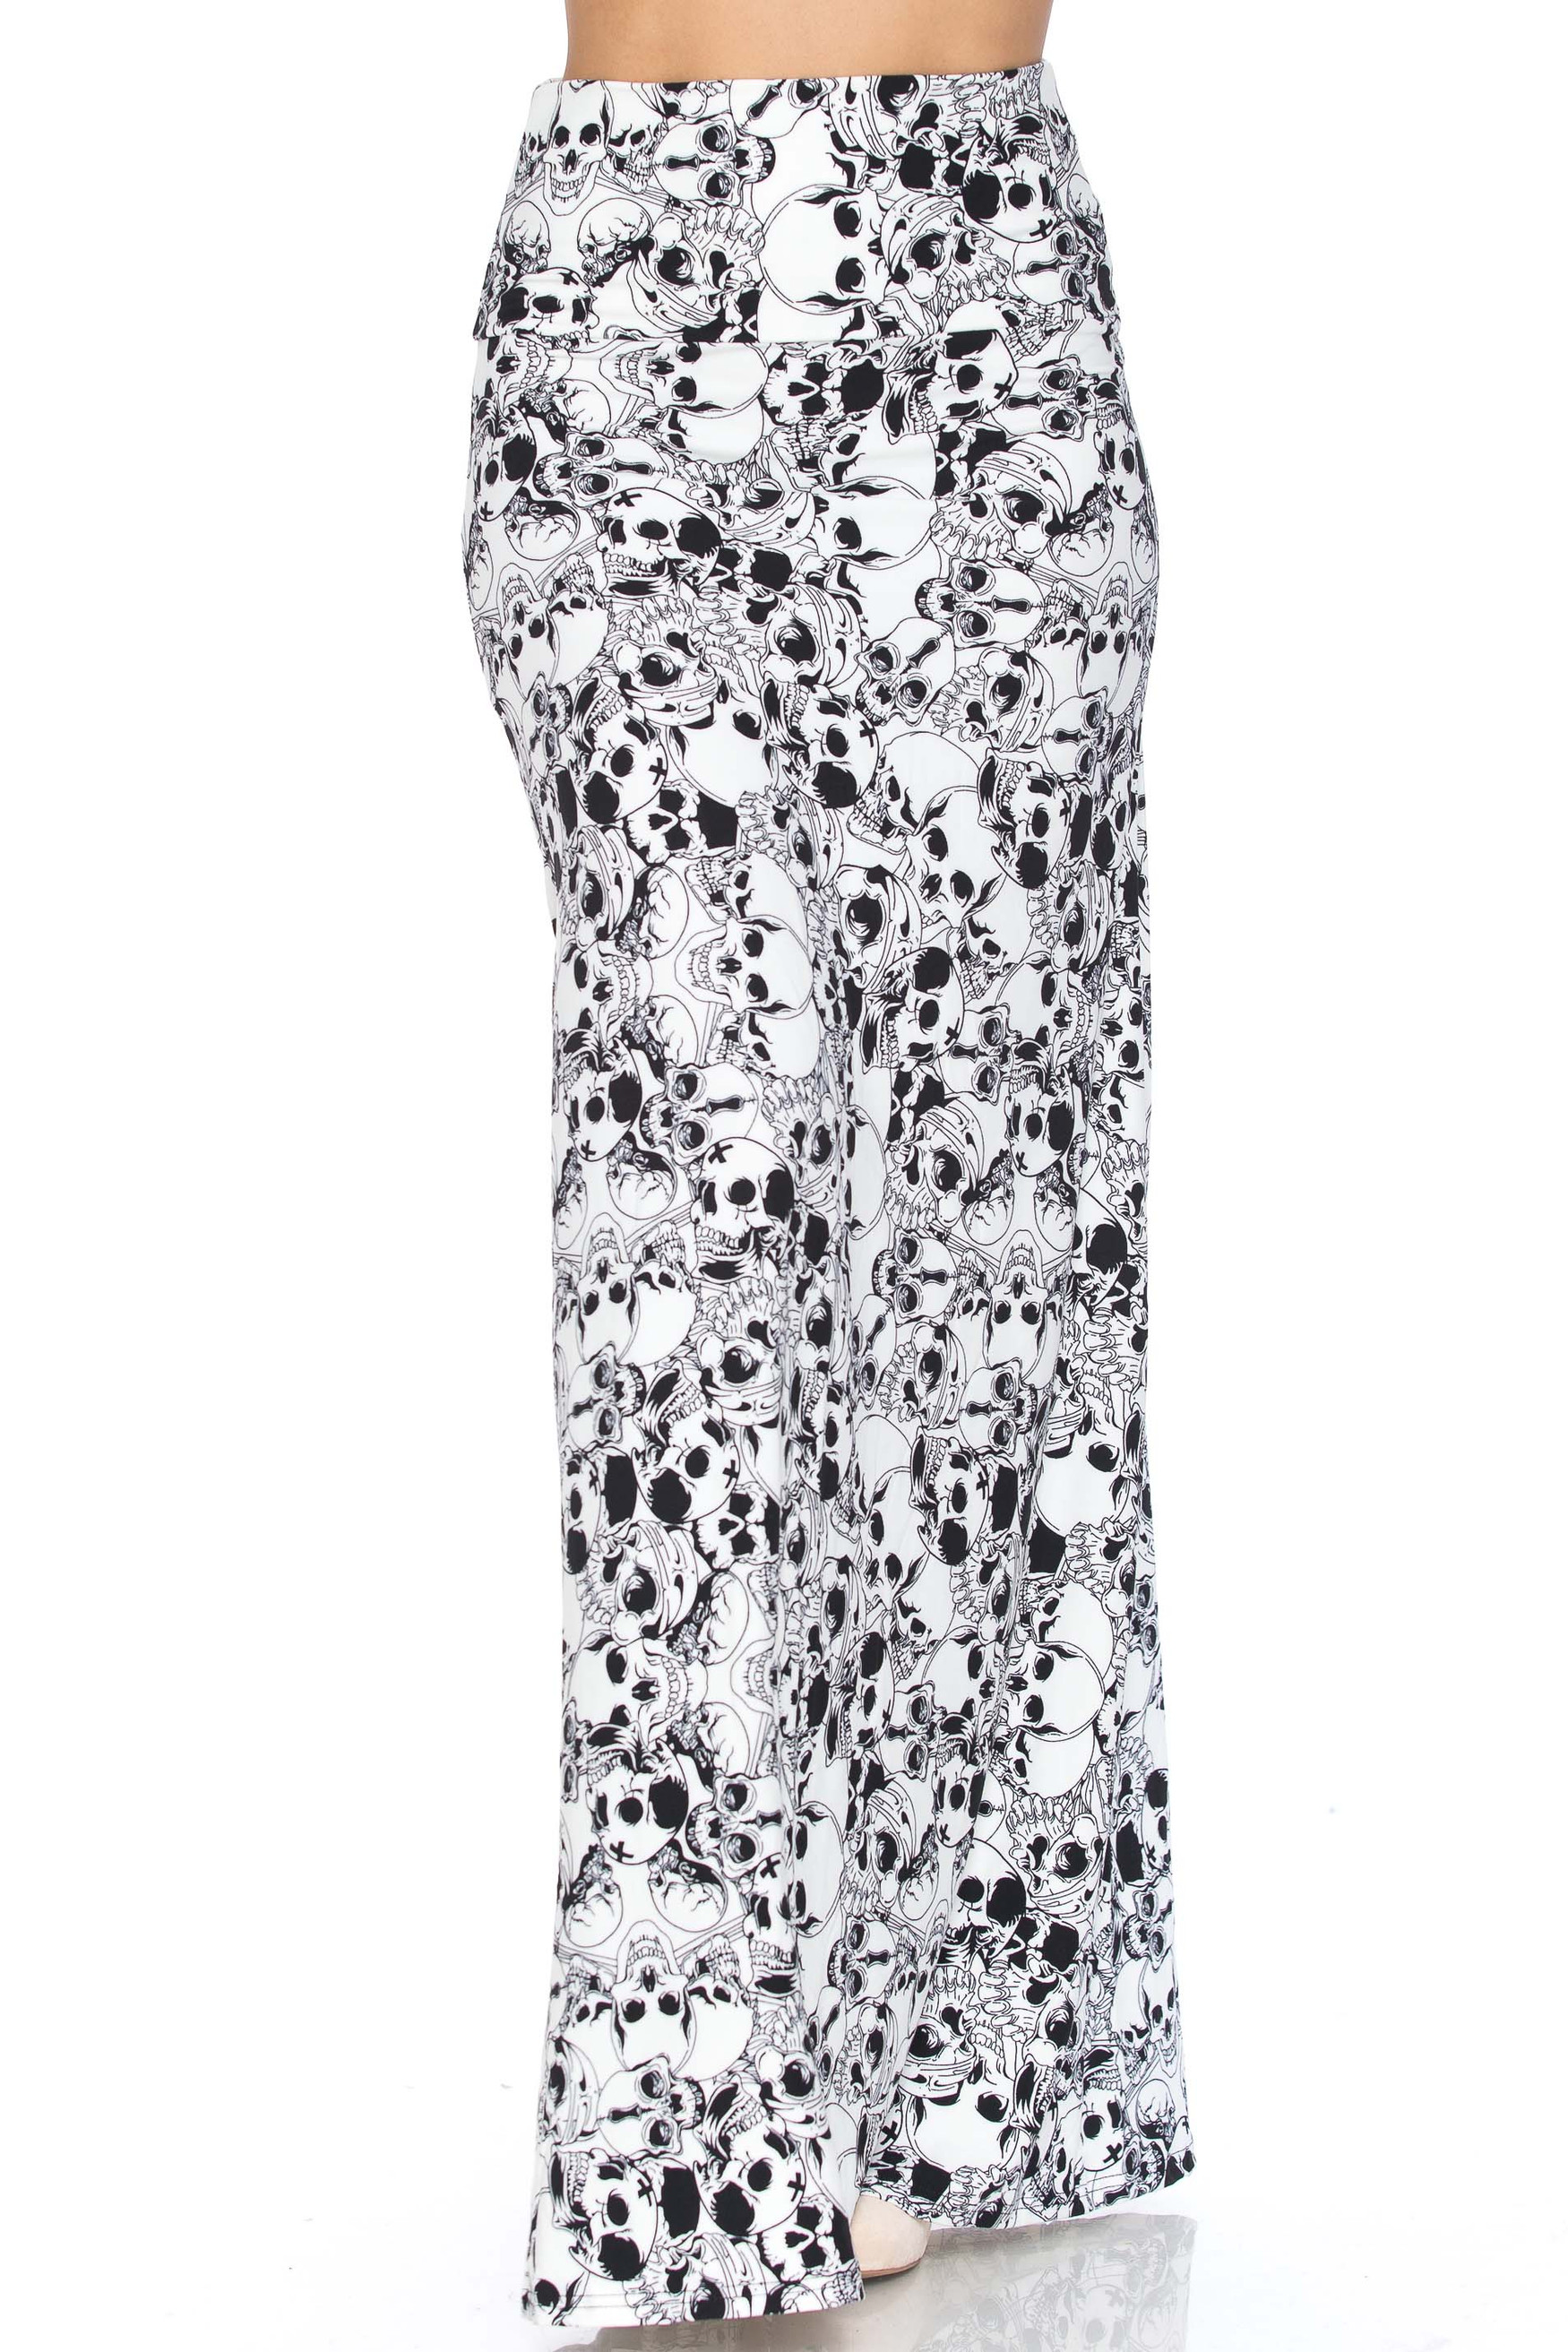 White Layers of Skulls Buttery Soft Maxi Skirt